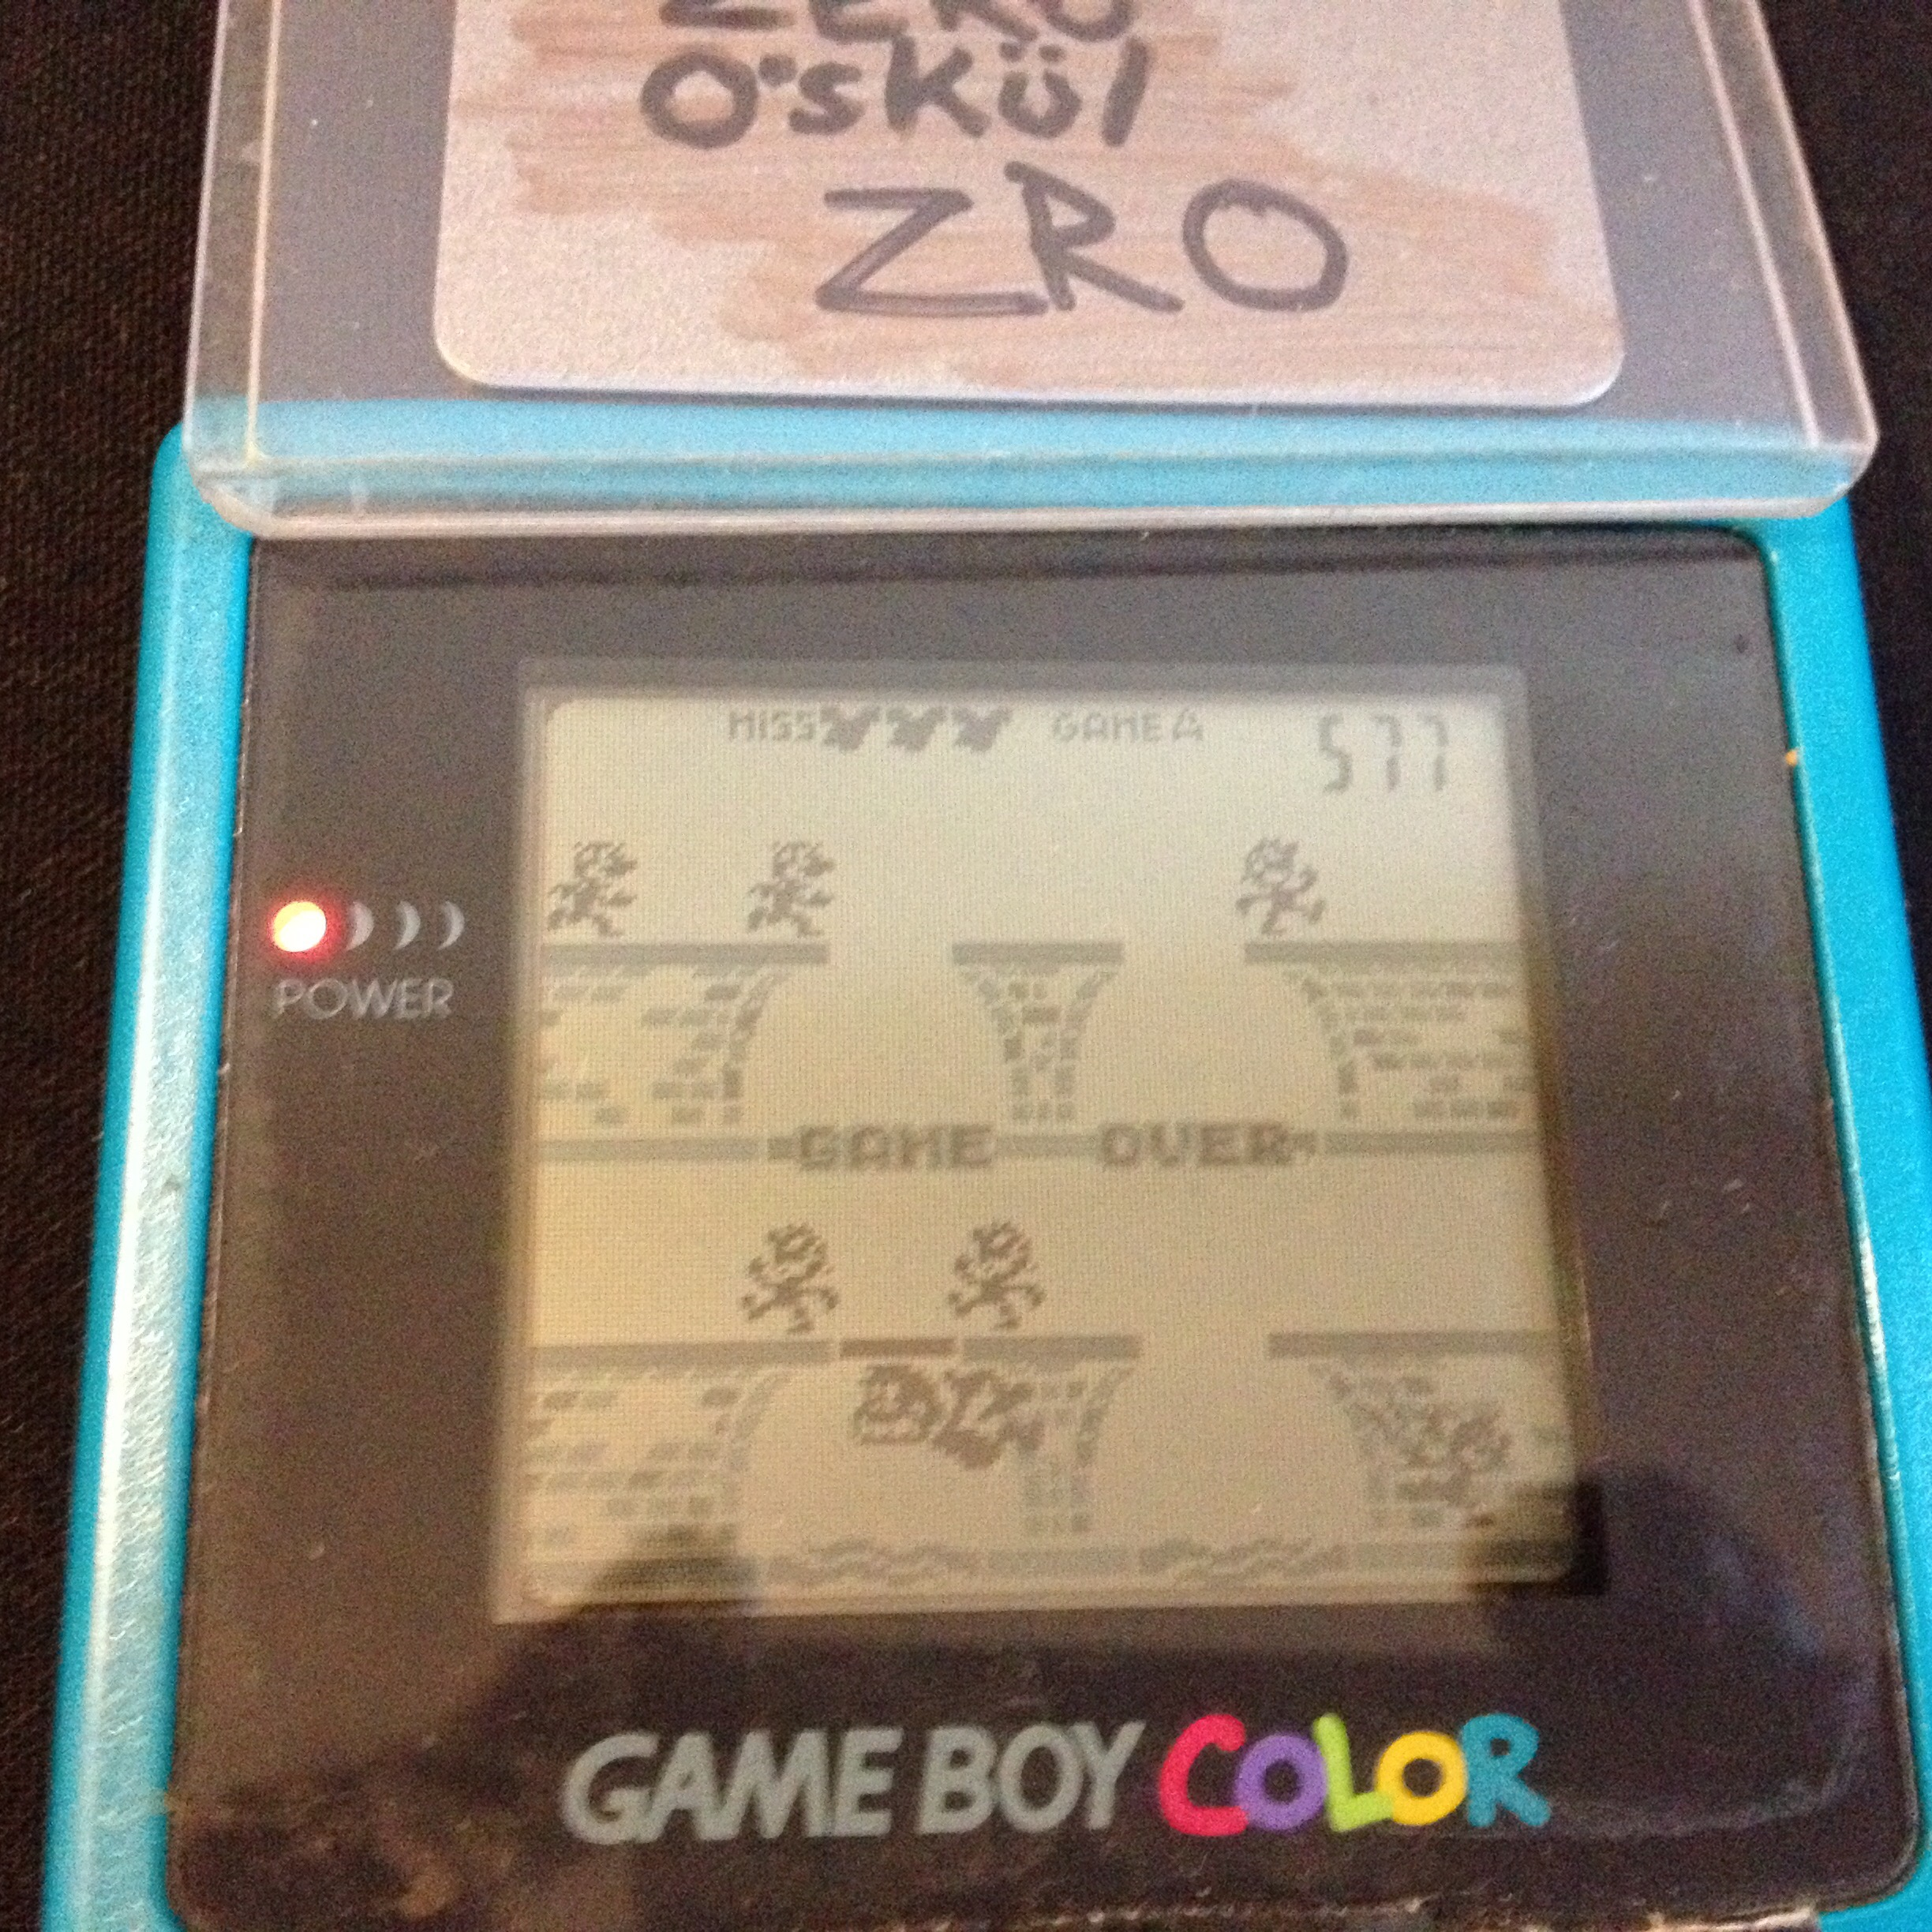 zerooskul: Game & Watch Gallery: Manhole [Classic: Easy] (Game Boy) 577 points on 2019-07-13 11:58:59